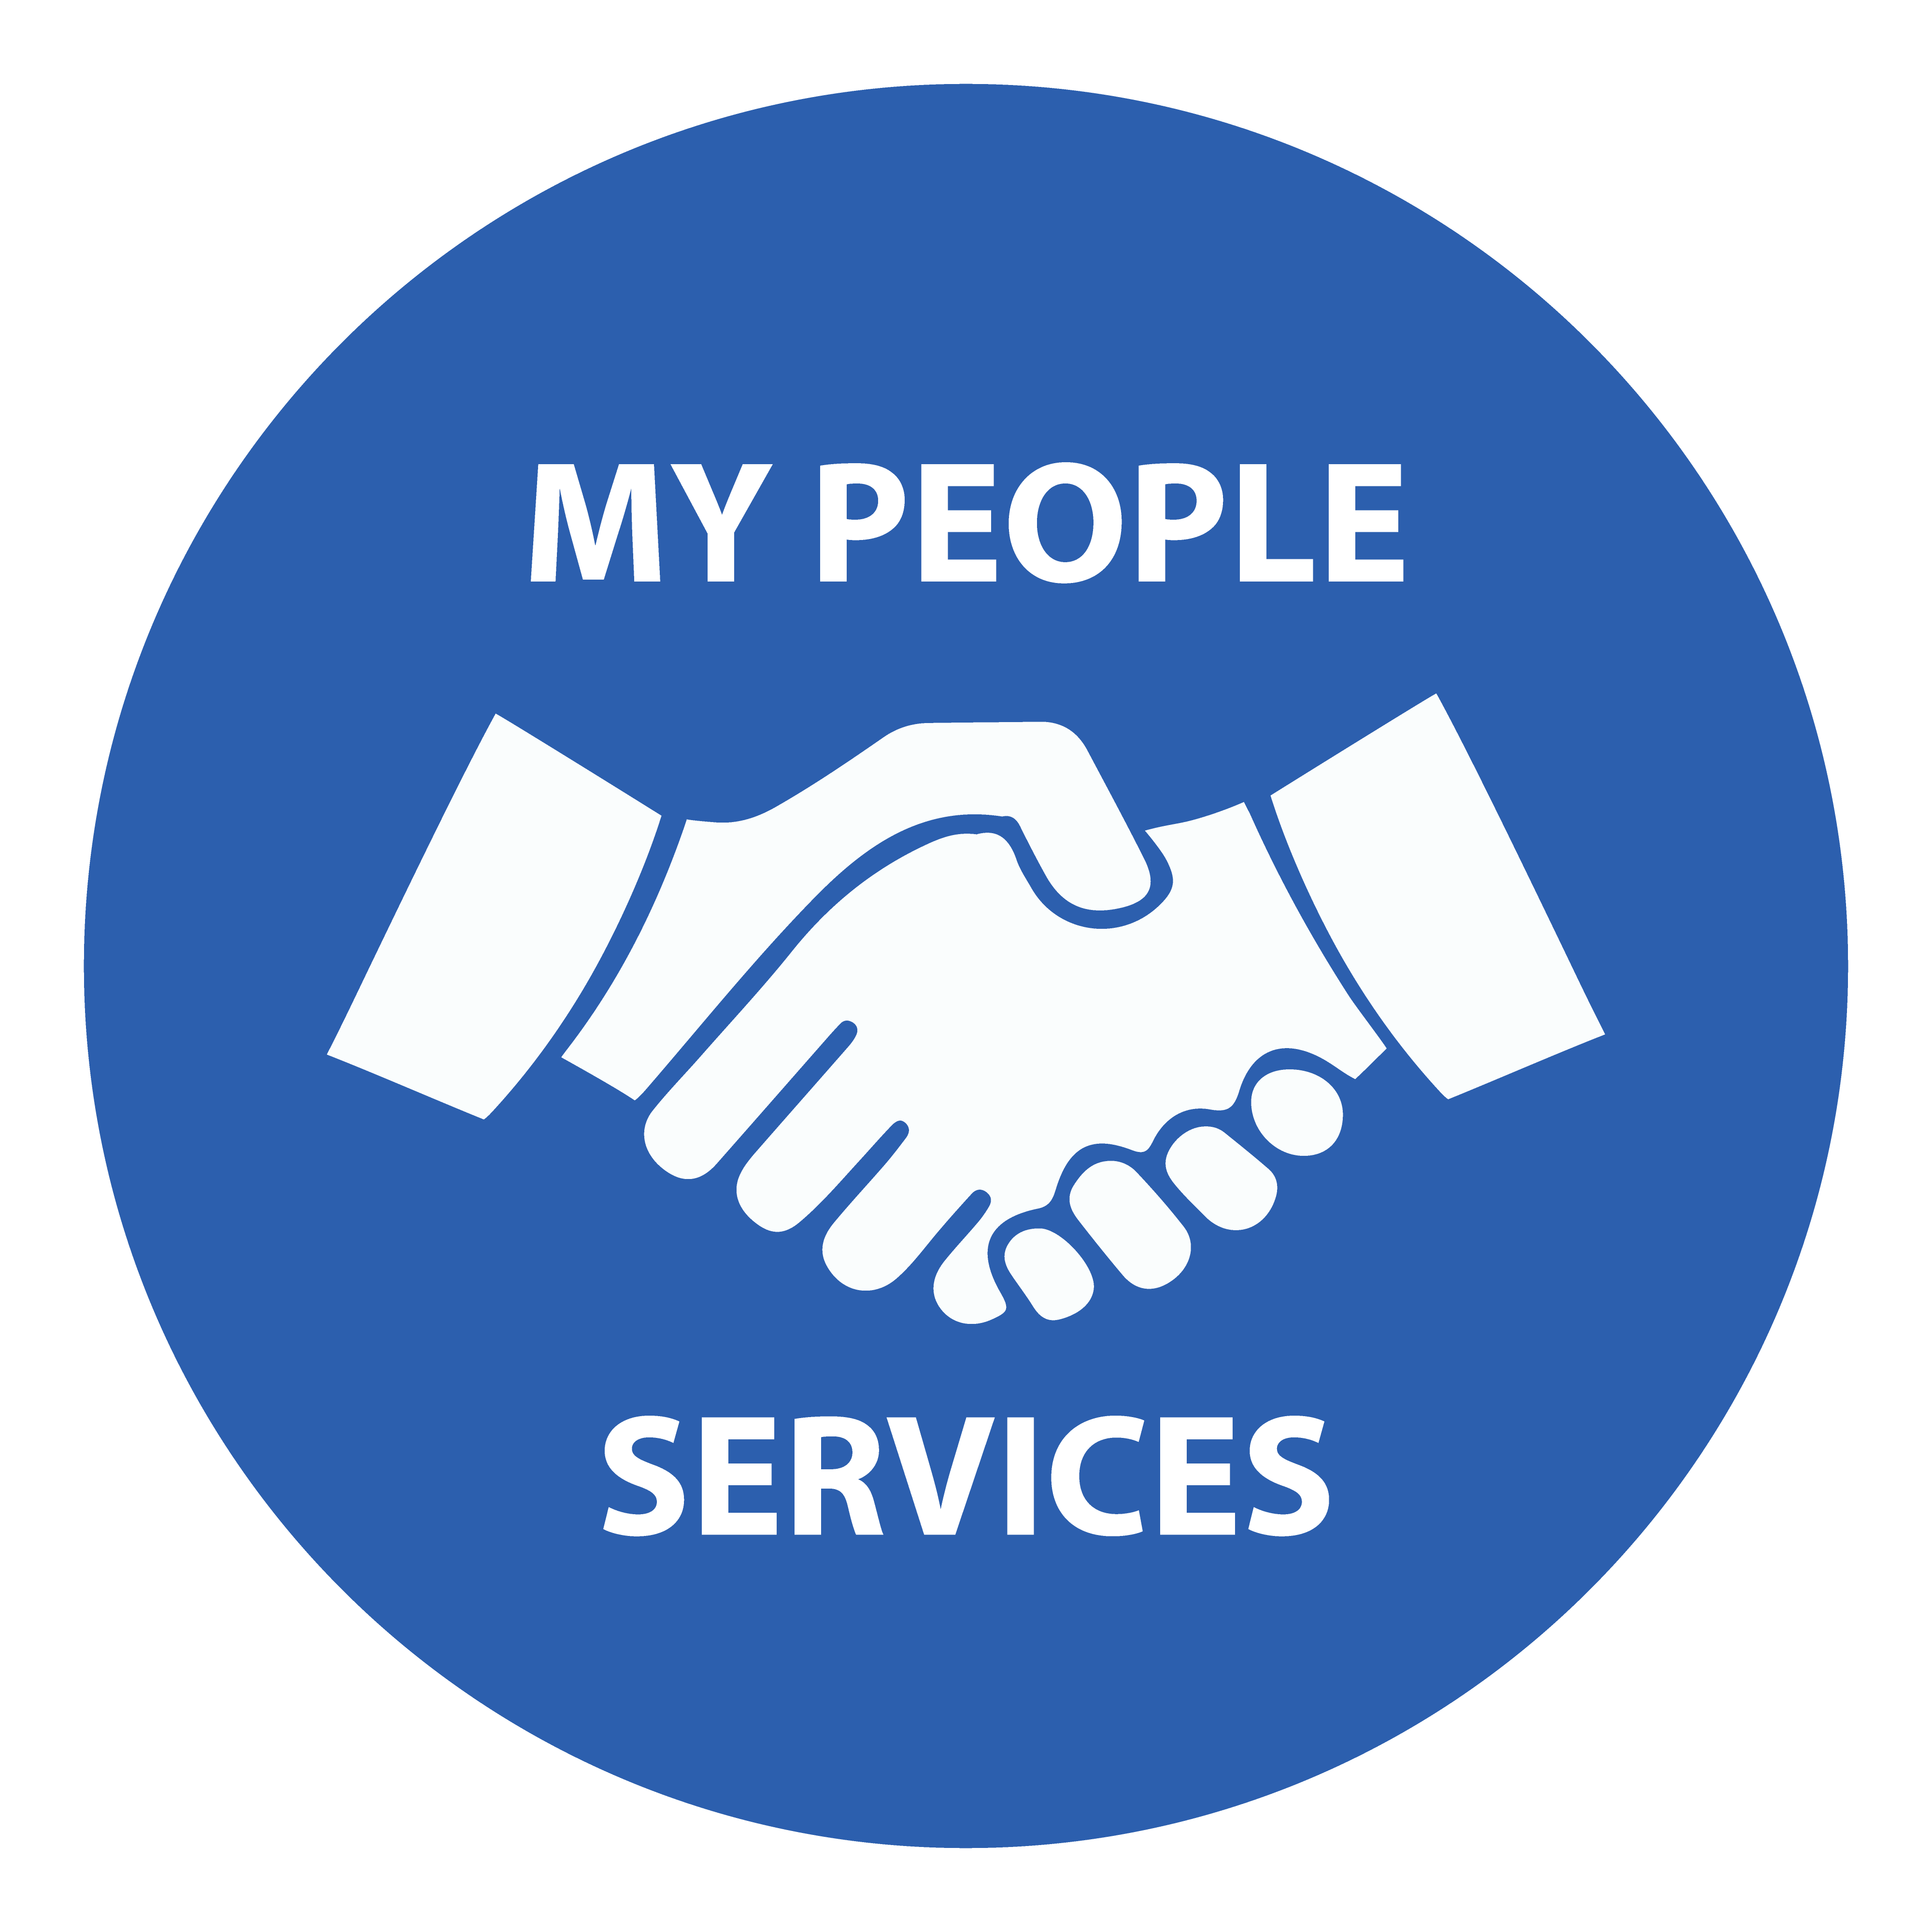 My People Services